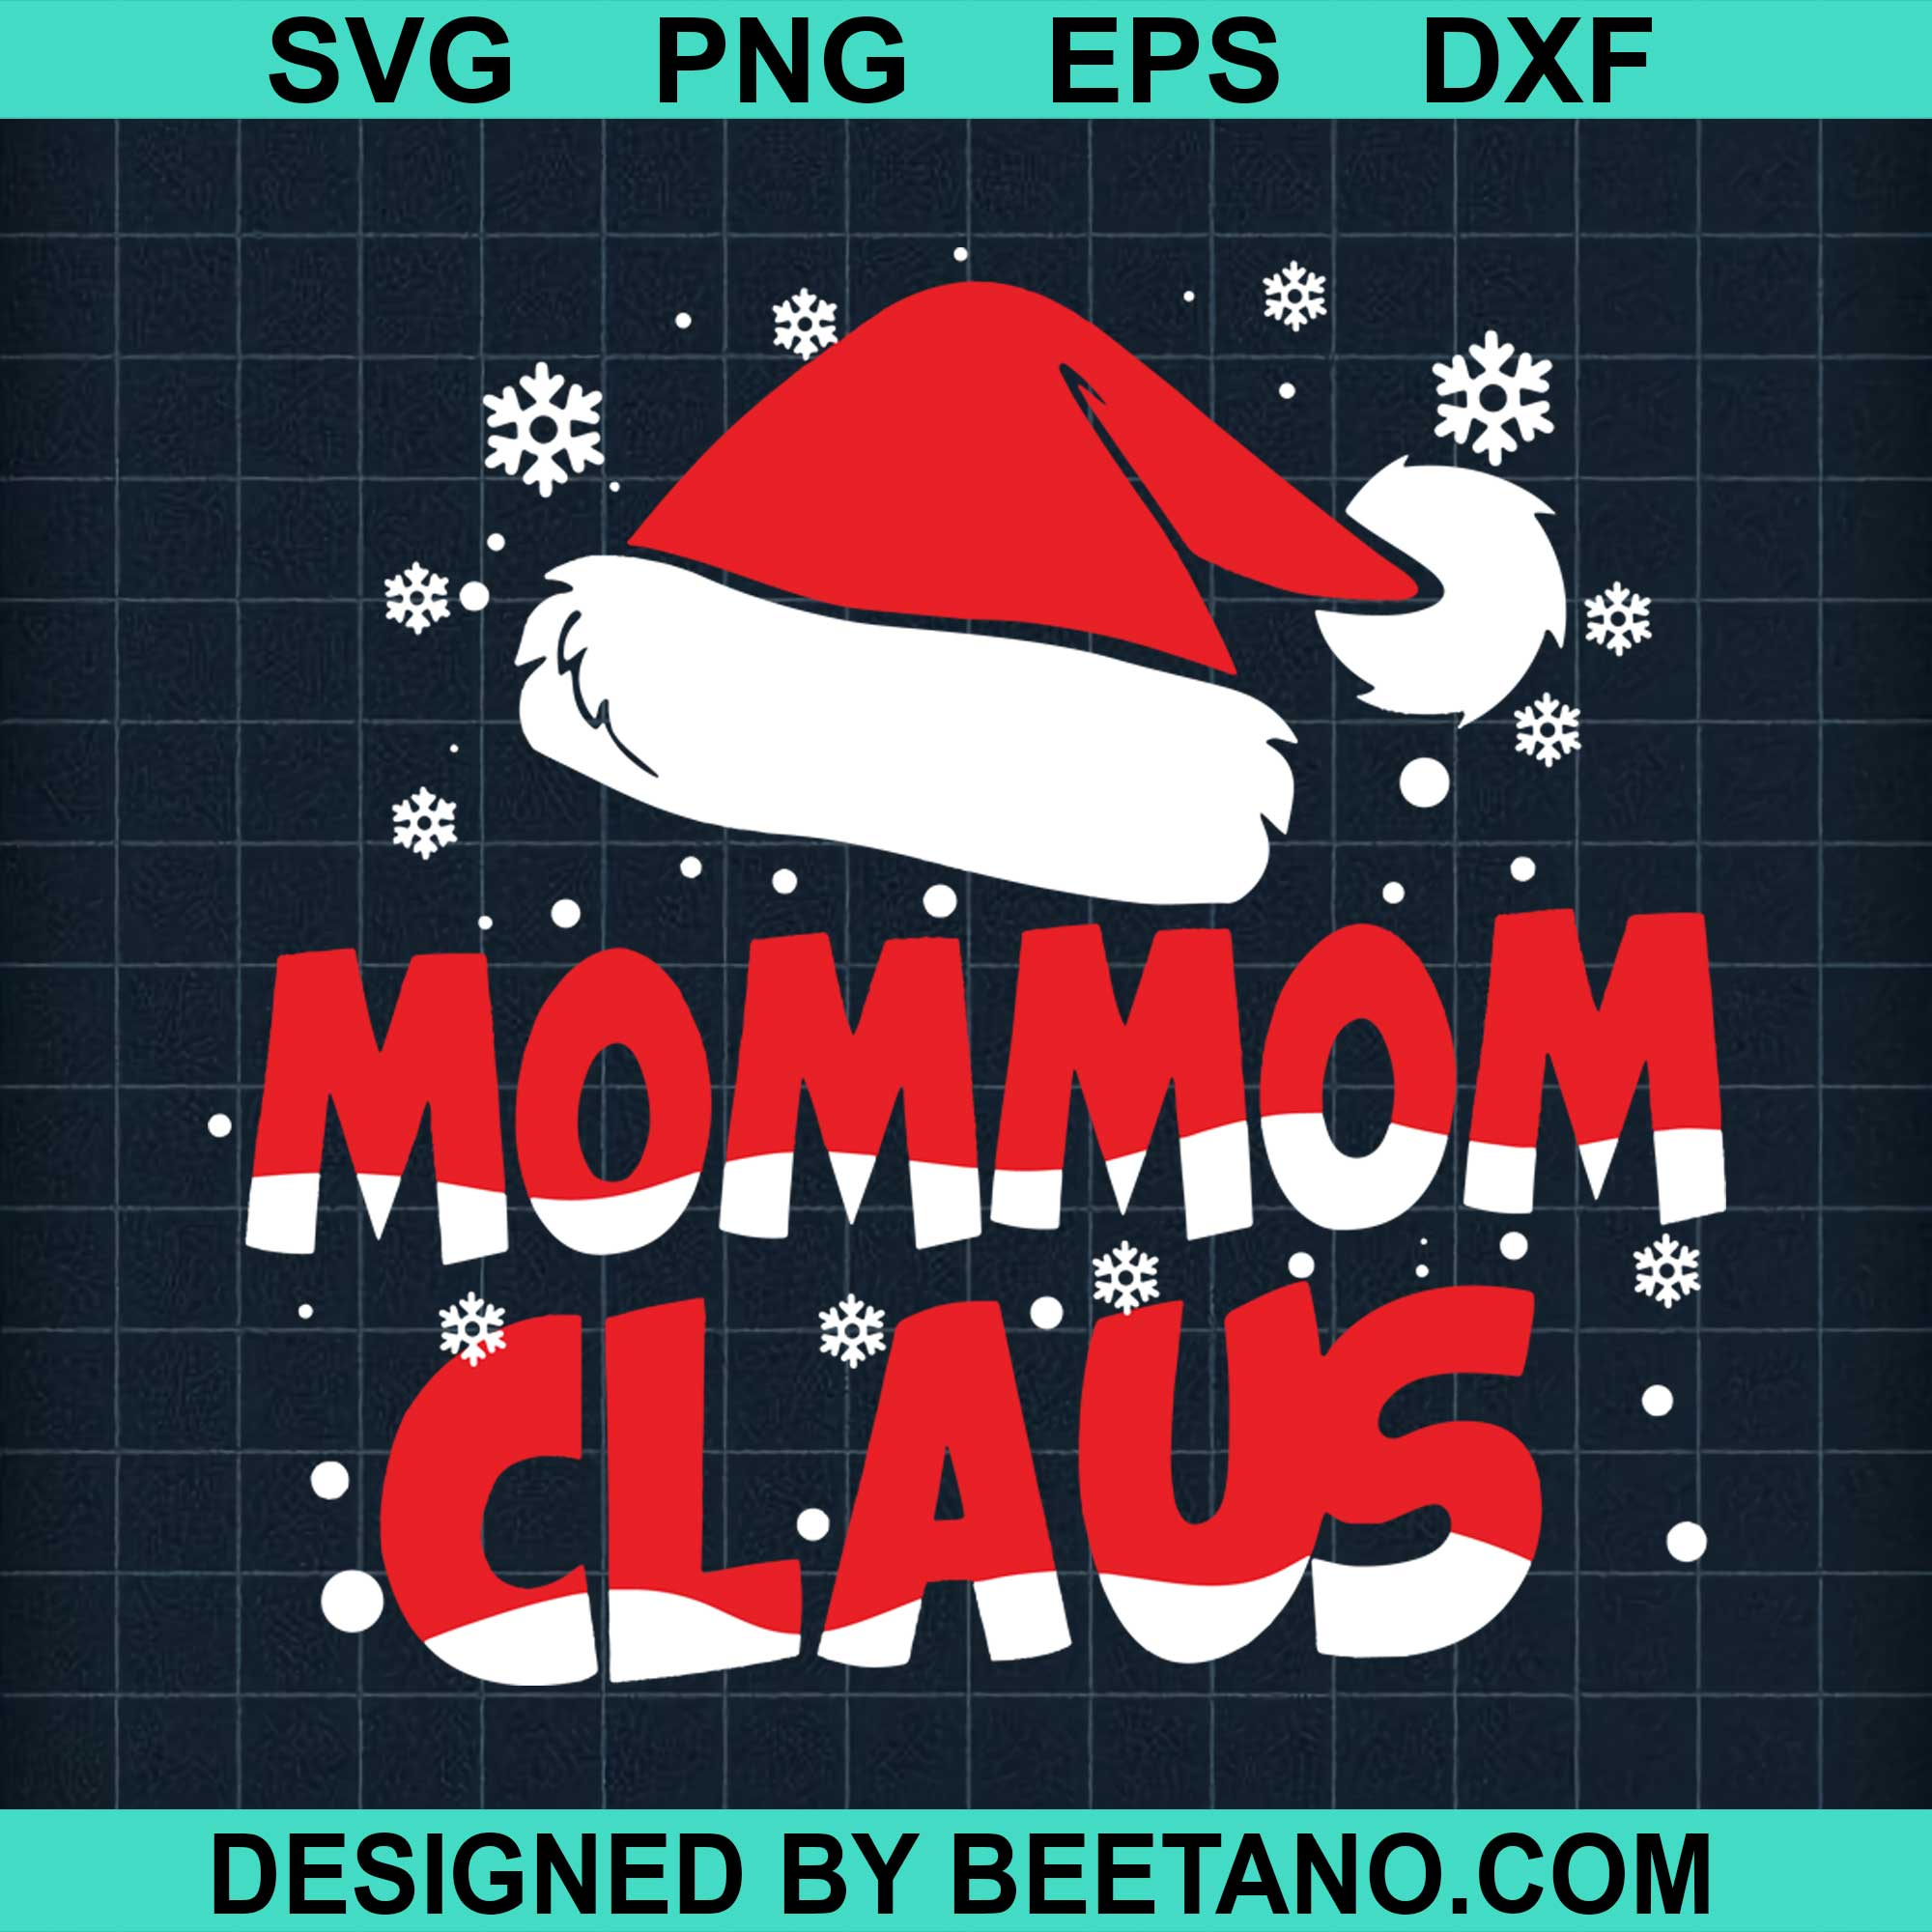 Mommom Claus Christmas